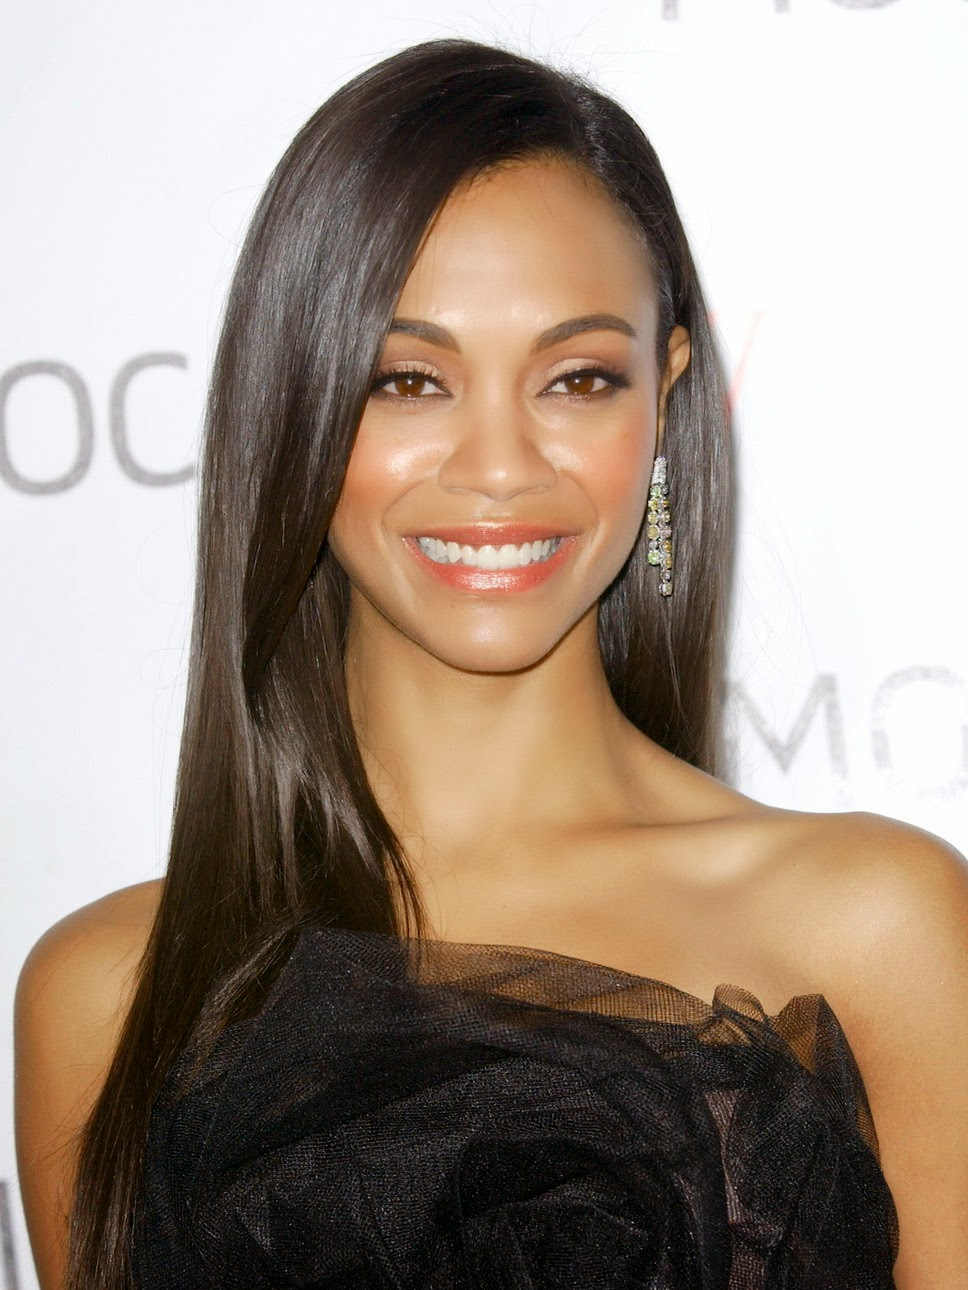 Zoe Saldana Named the New Face of L'OréalParis